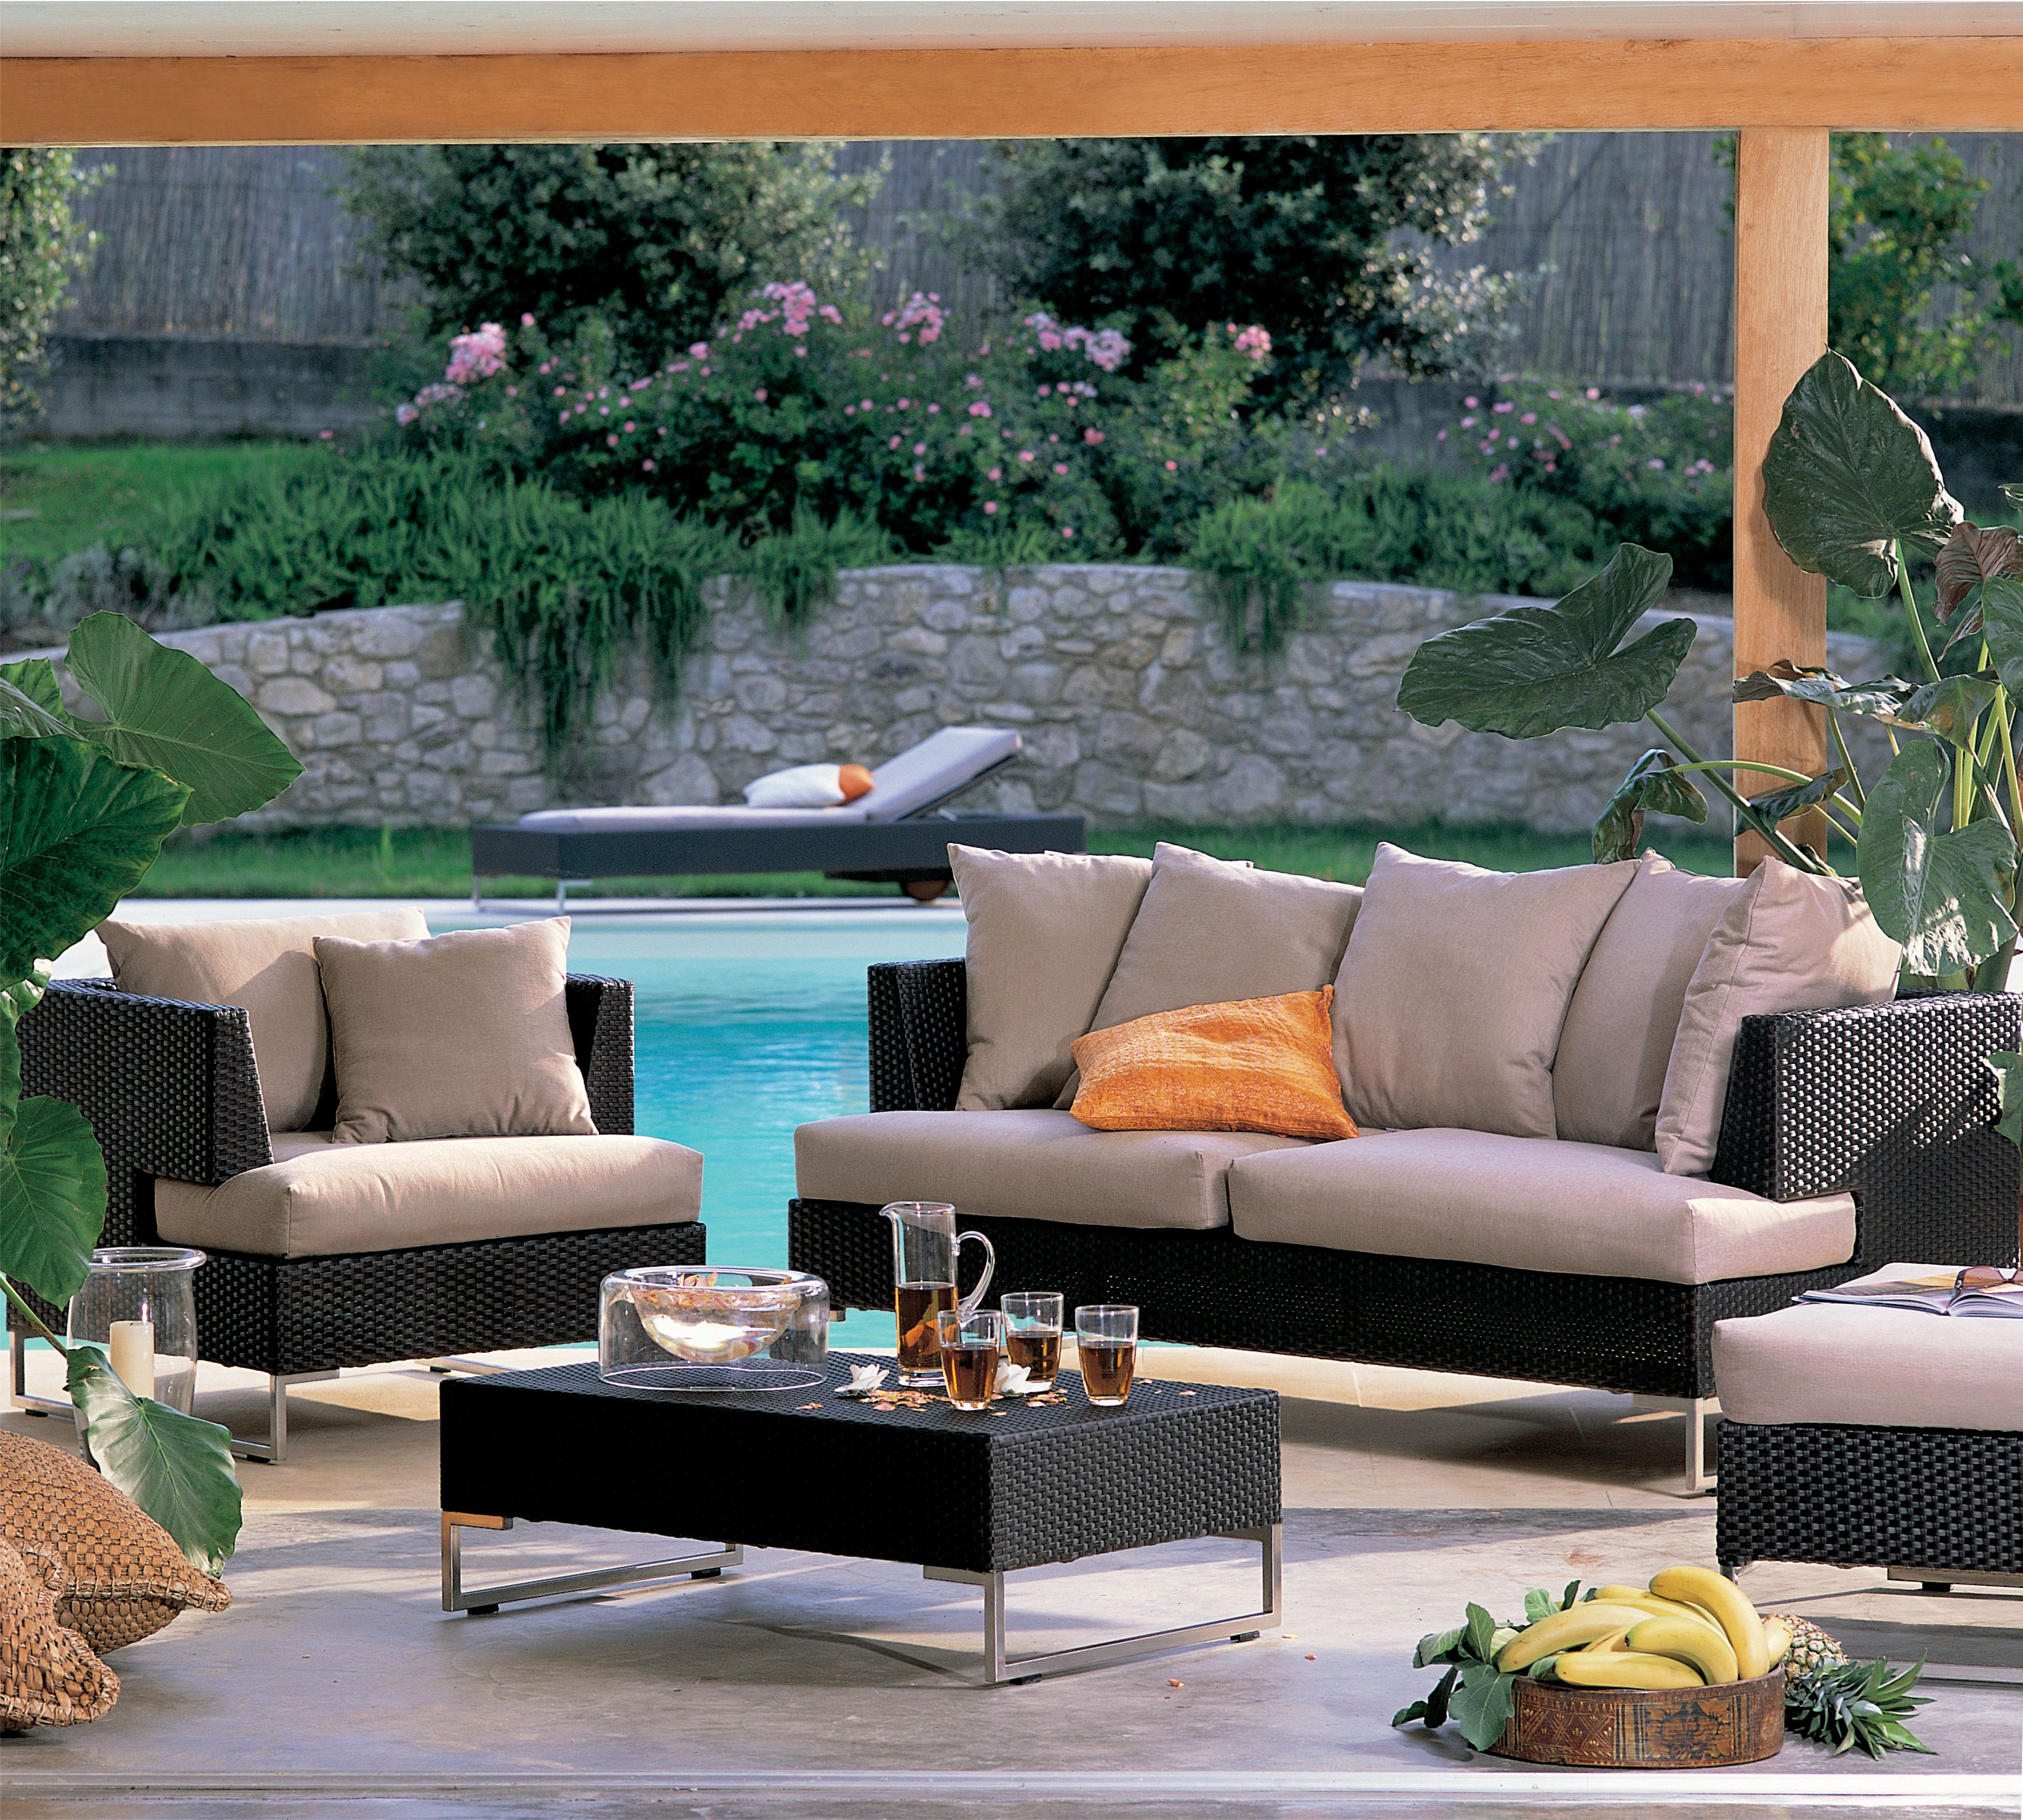 The Luxor Collection Is A Versatile And Complete Family Of Sofas And Armchairs Ele With Images Luxury Patio